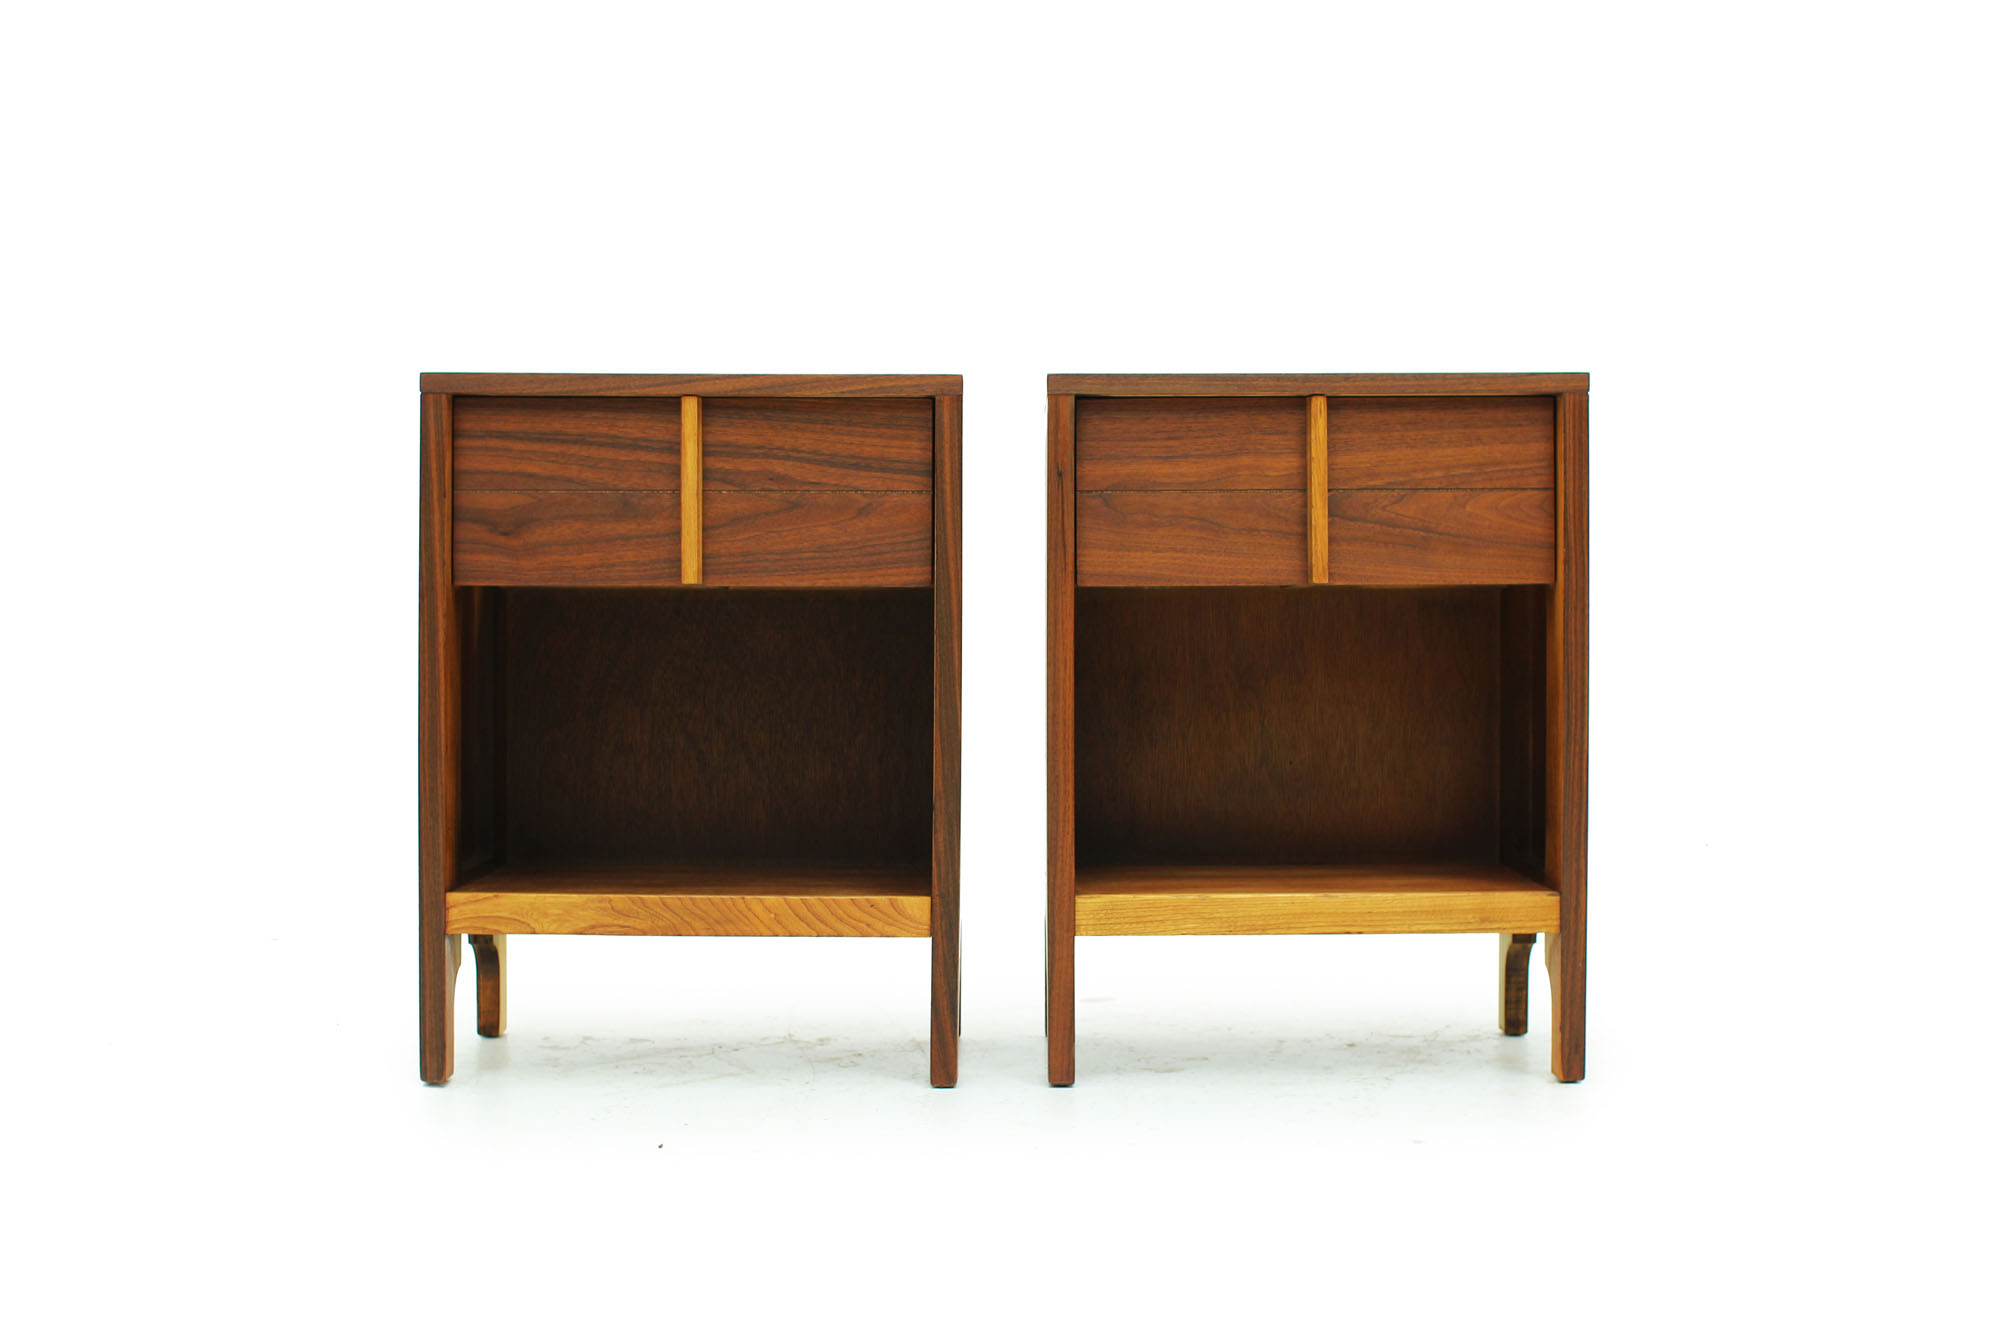 Pair of Walnut Bedside Night Stands Mid century modern design (4).jpg